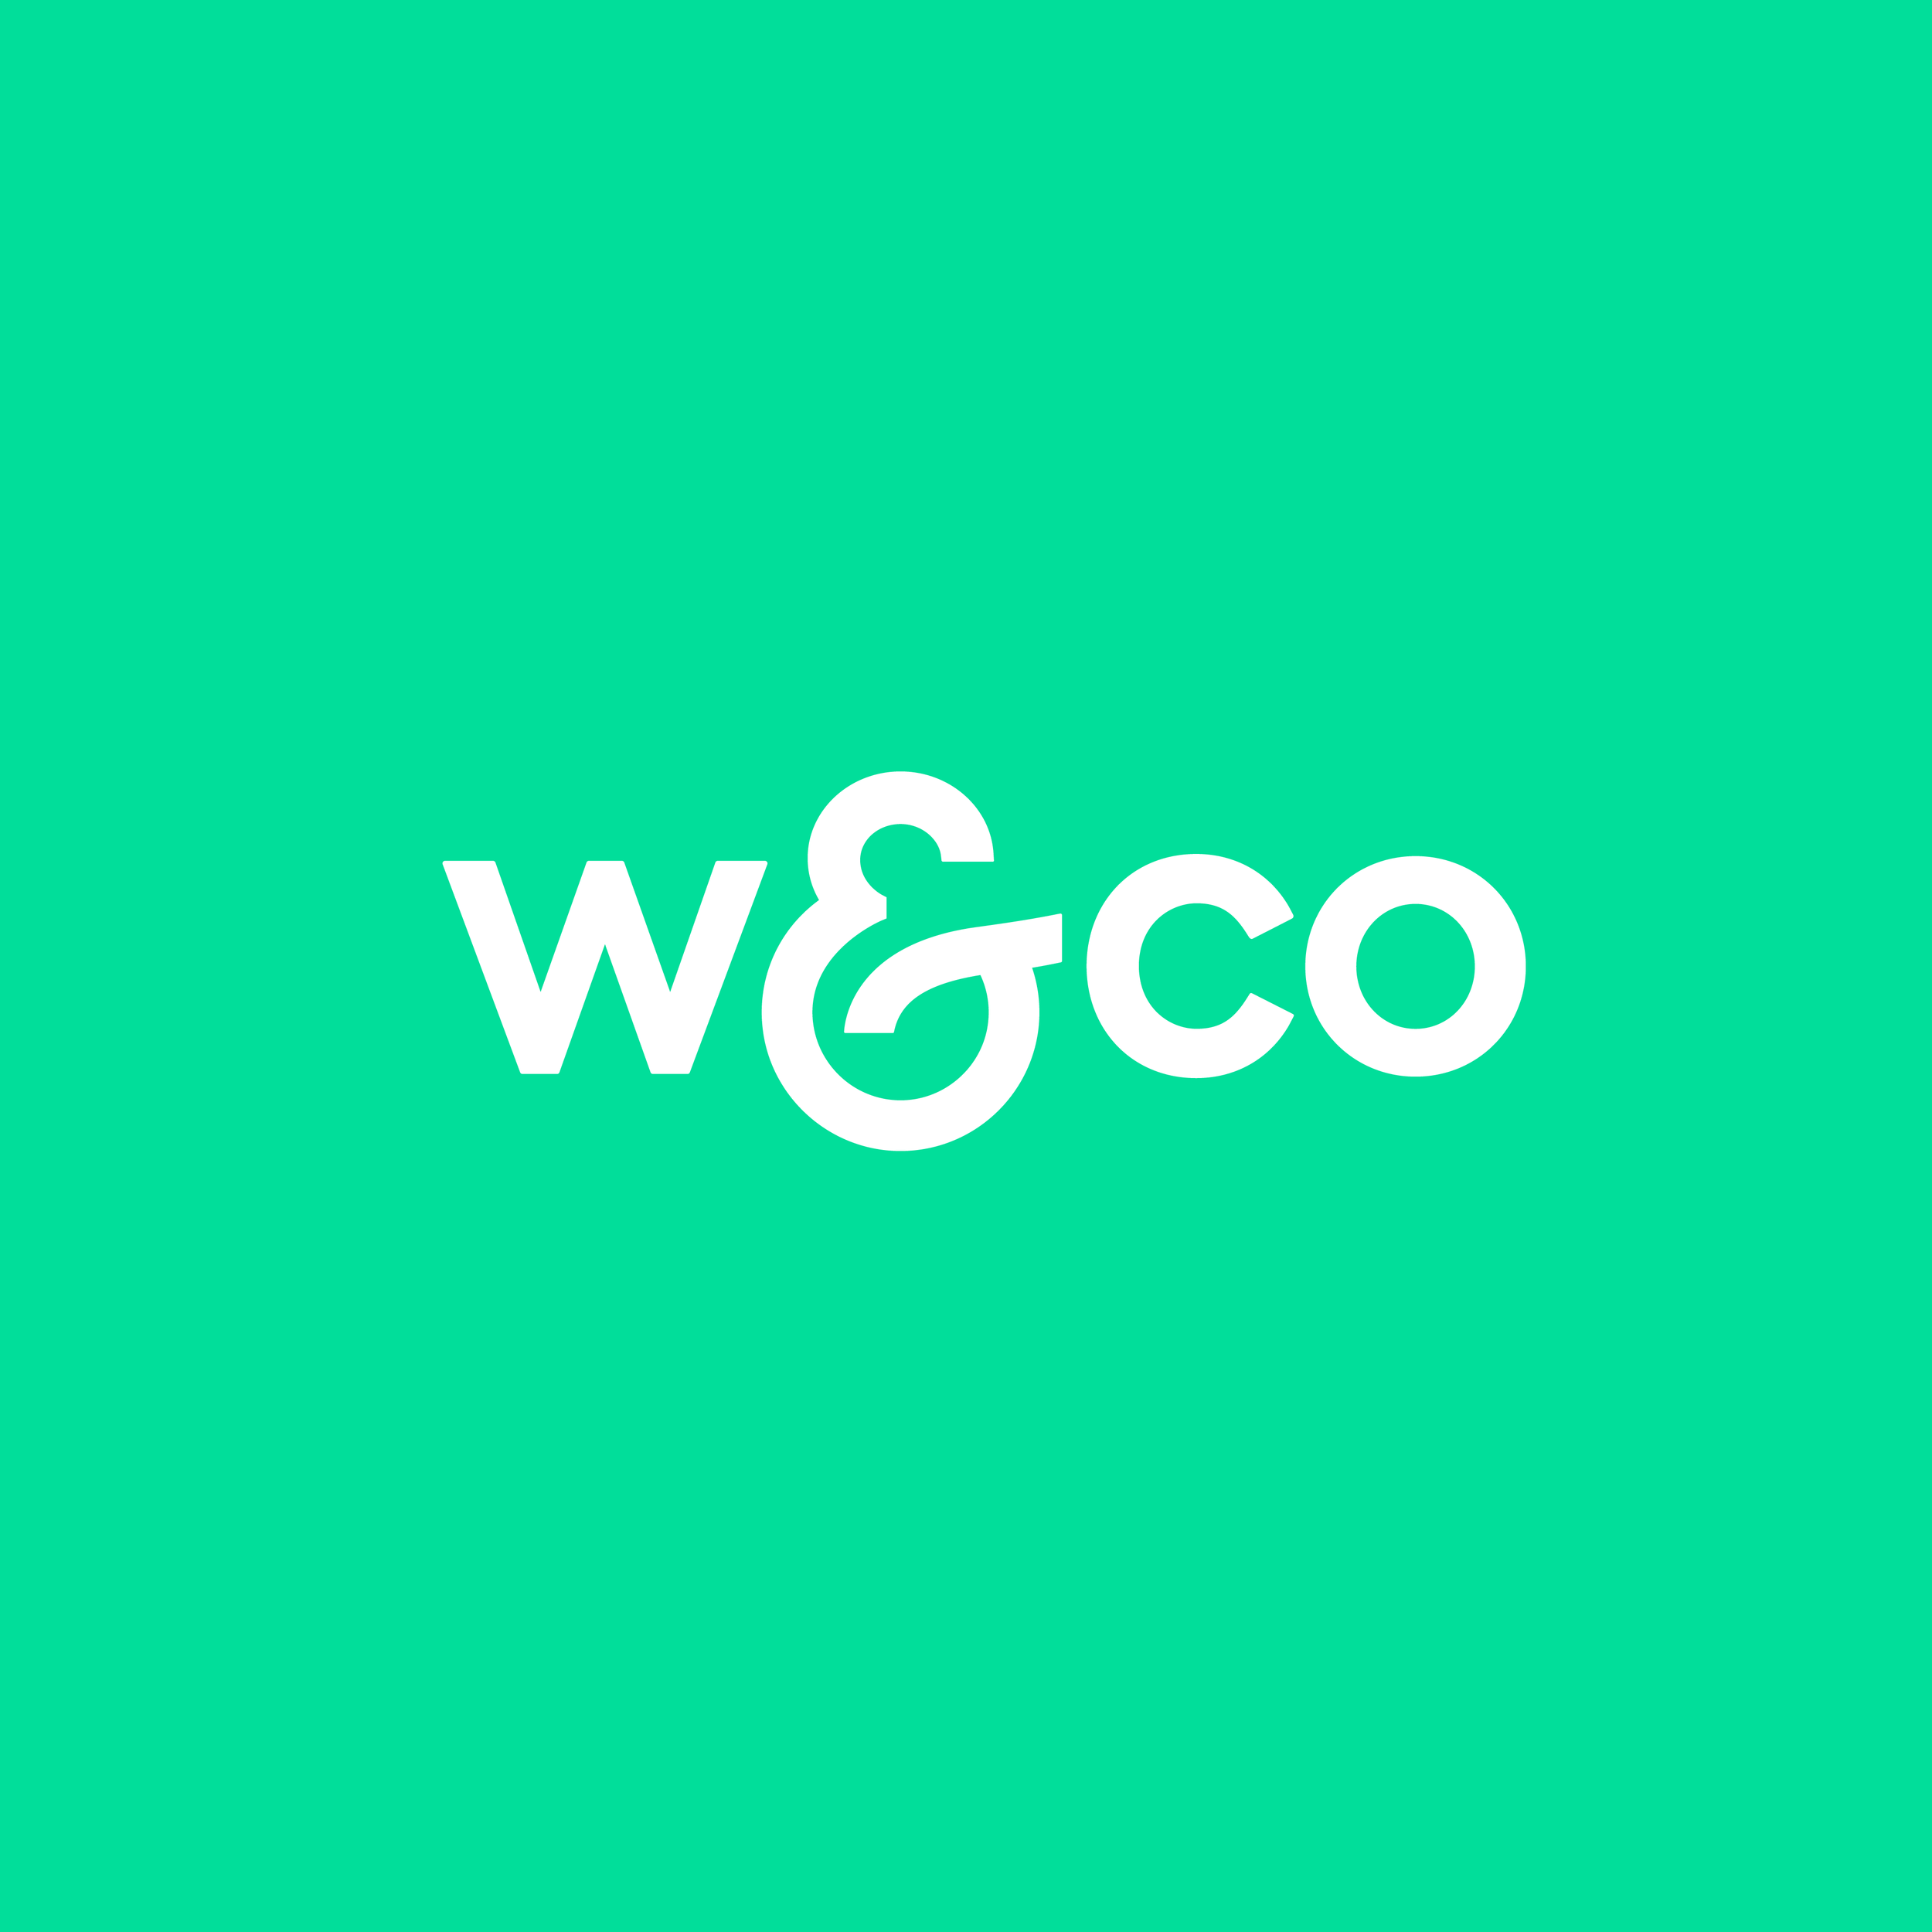 WEDNESDAYCO-CONCEPT-960PX-01.png